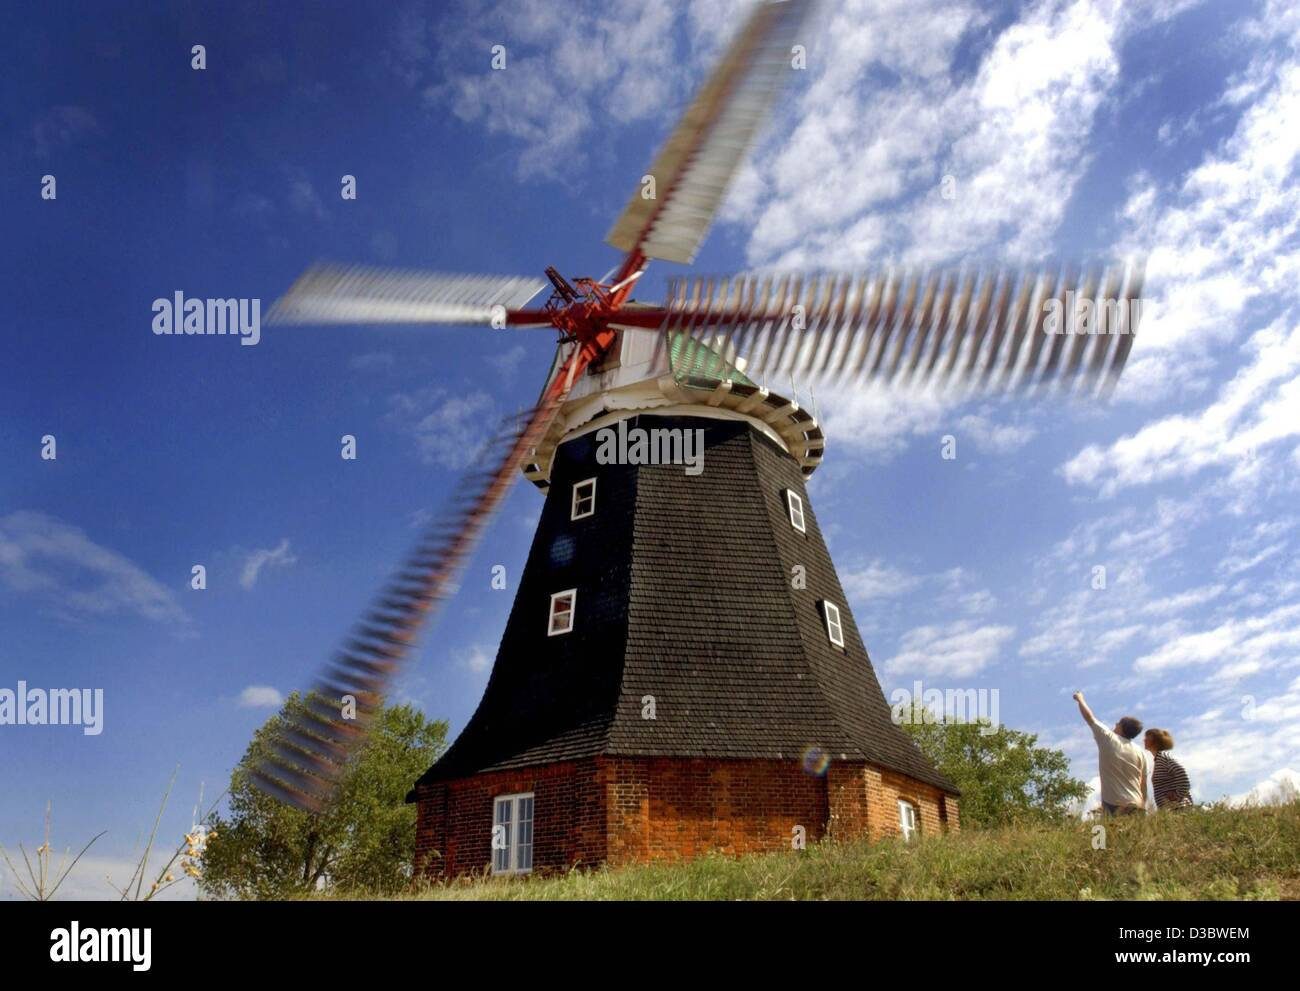 (dpa) - Holiday-makers look at the windmill in Stove, Germany, 6 January 2003. The dutch-style windmill was built - Stock Image